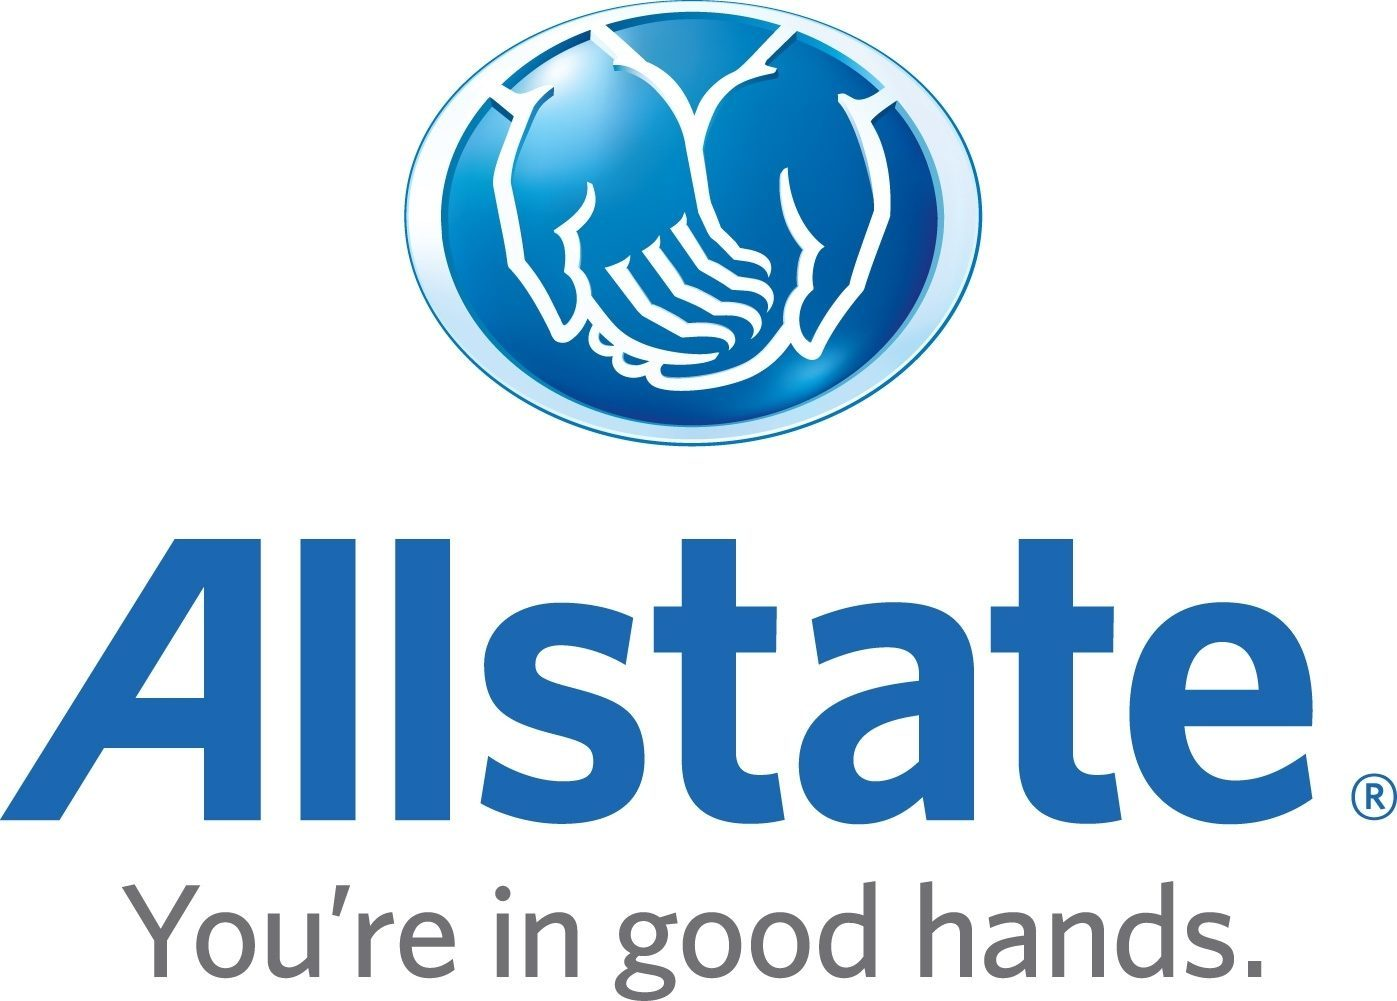 Allstate Business Insurance Review 2016 - ConsumerAffairs